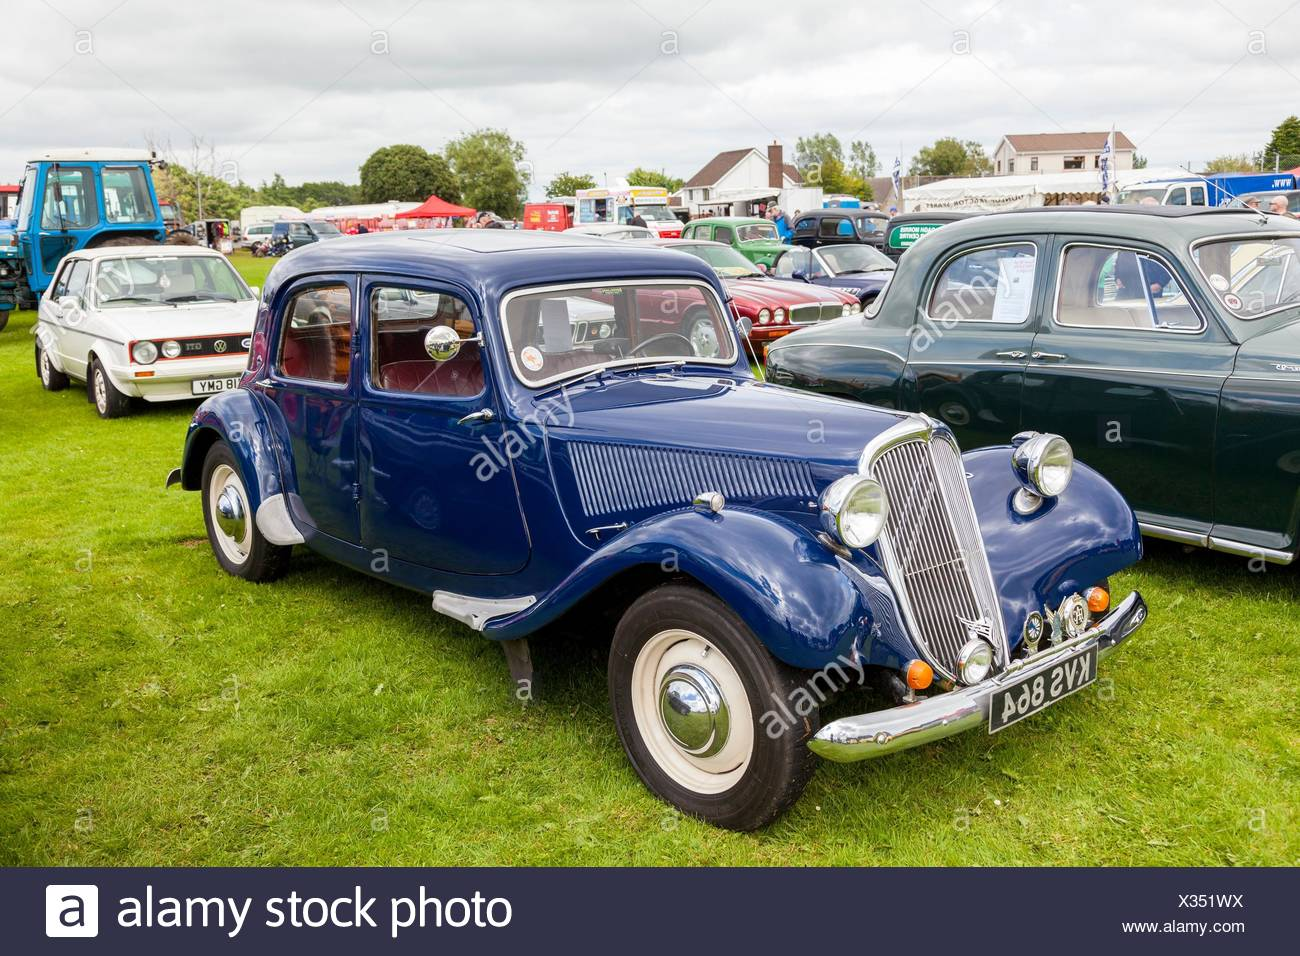 1952 Citroen Traction Avant This Model Was Built From 1934 To 1957